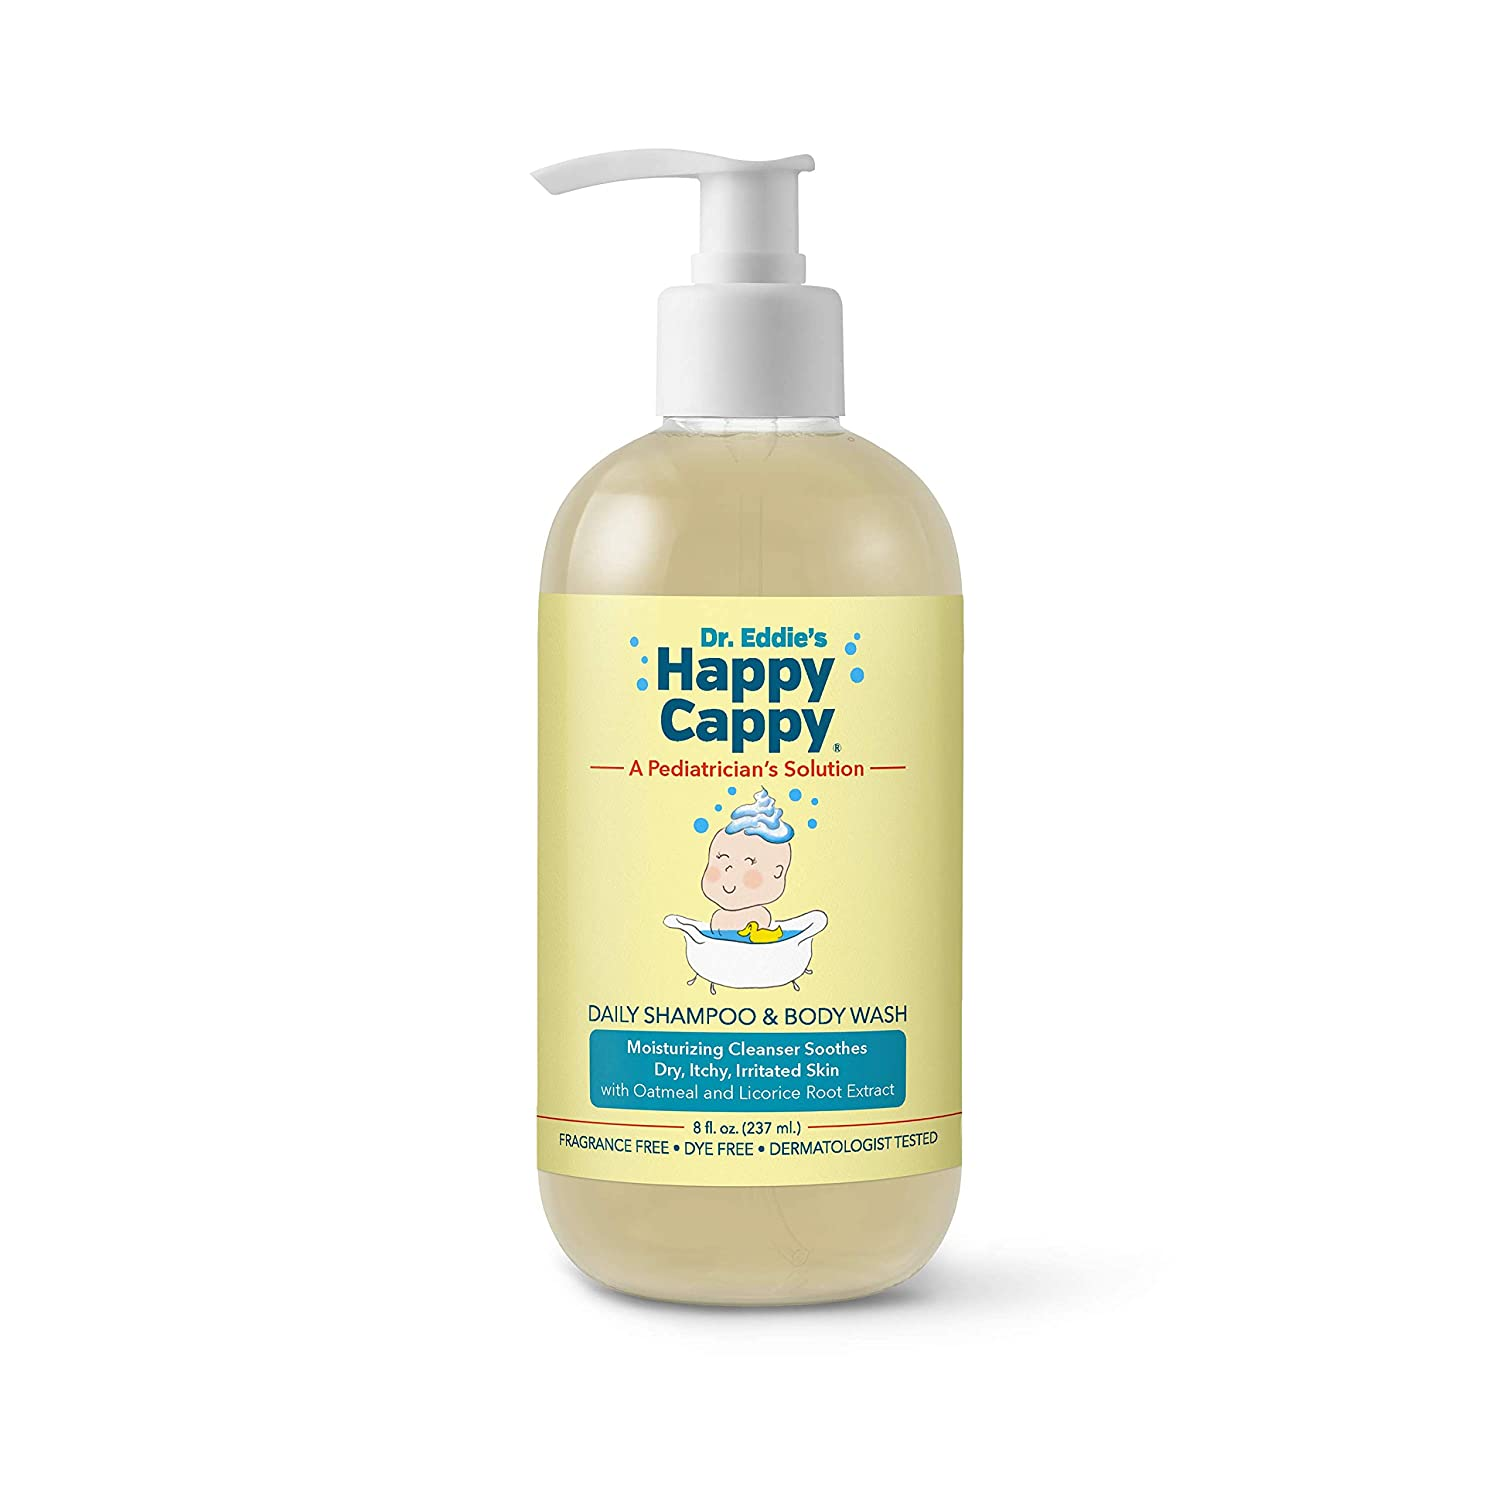 Dr. Eddie's Happy Cappy Daily Shampoo & Body Wash for Children, Soothes Dry, Itchy, Sensitive, Eczema Prone Skin, Dermatologist Tested, Fragrance Free, Dye Free, 8 oz